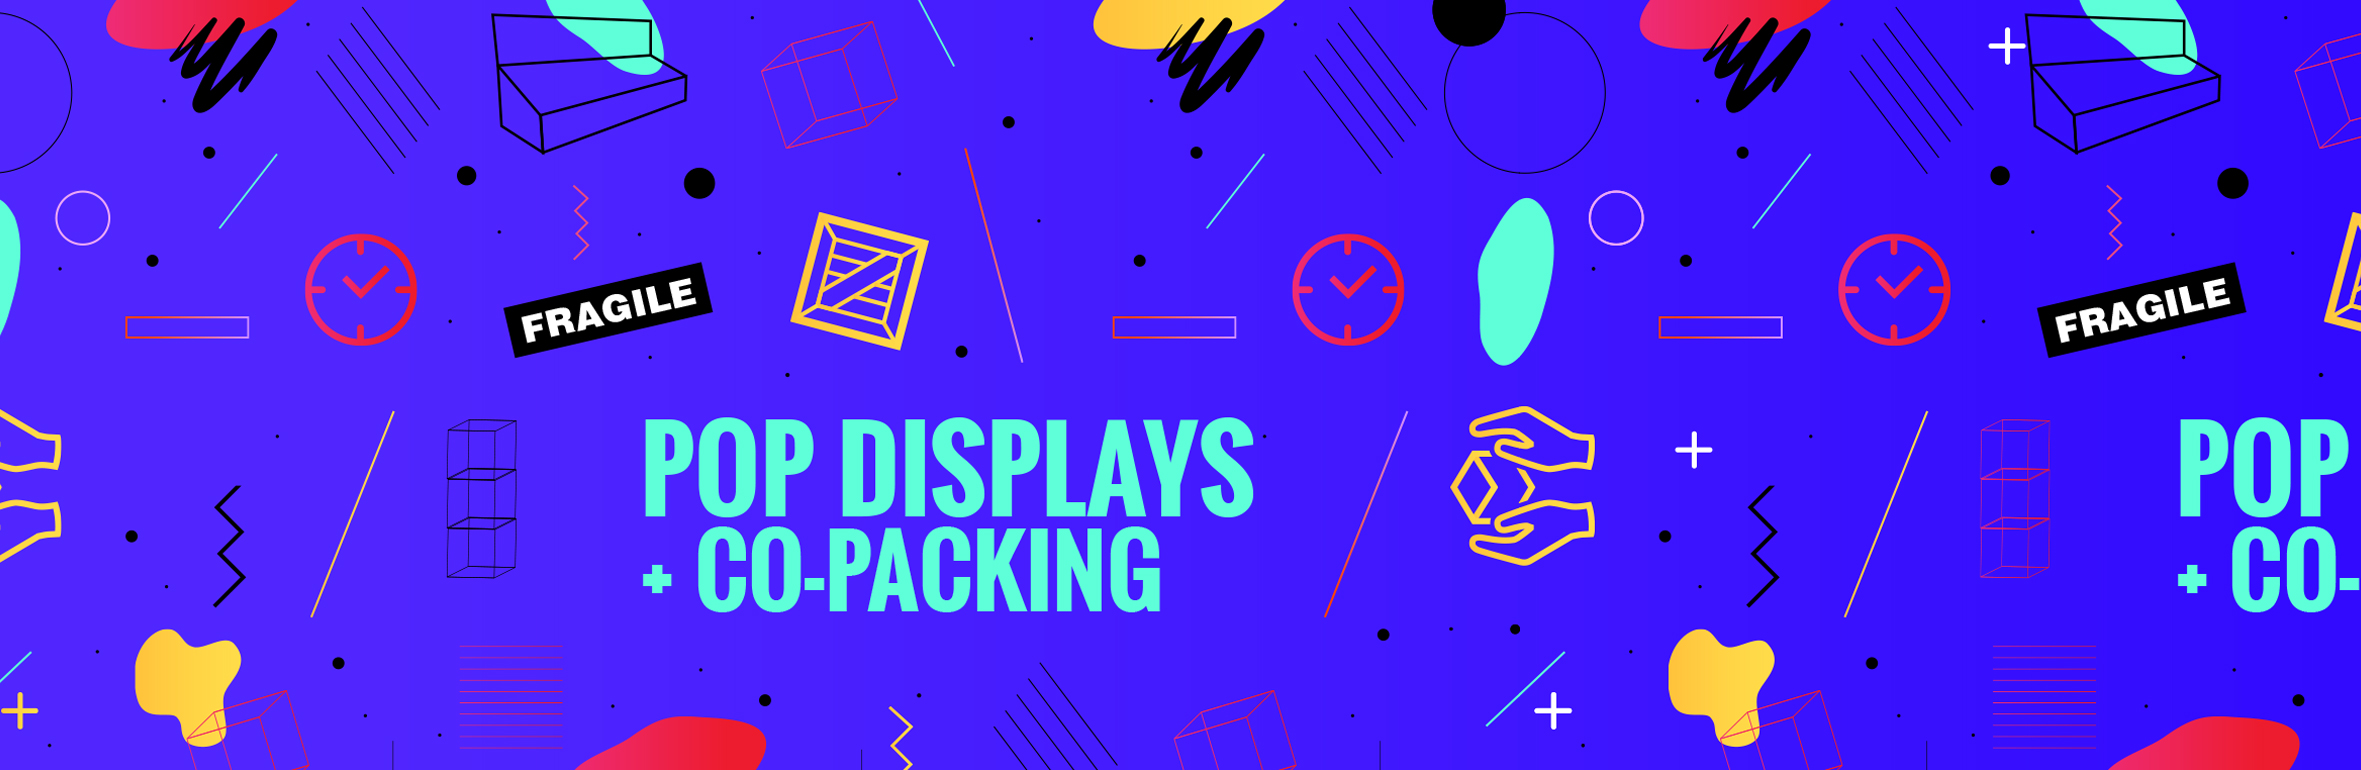 POP Displays + Co-Packing